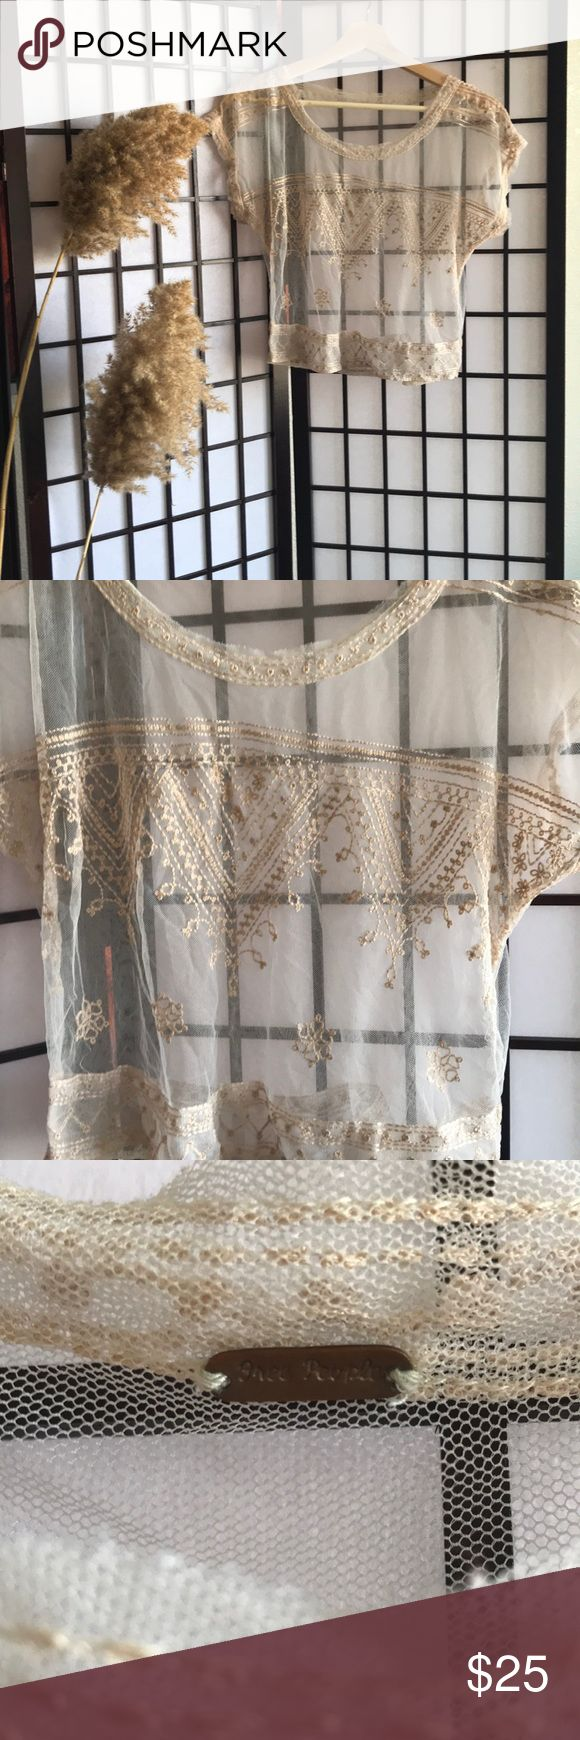 Free People Sheer Lace  Cream Crop Top Fun and flirty, perfect for showing of your favorite bralette.  Intricate and delicate lace and embroidery design throughout.   Sheer/ see thru material.  This cream lace crop top is missing its size tag, but fits like a medium. Free People Tops Crop Tops